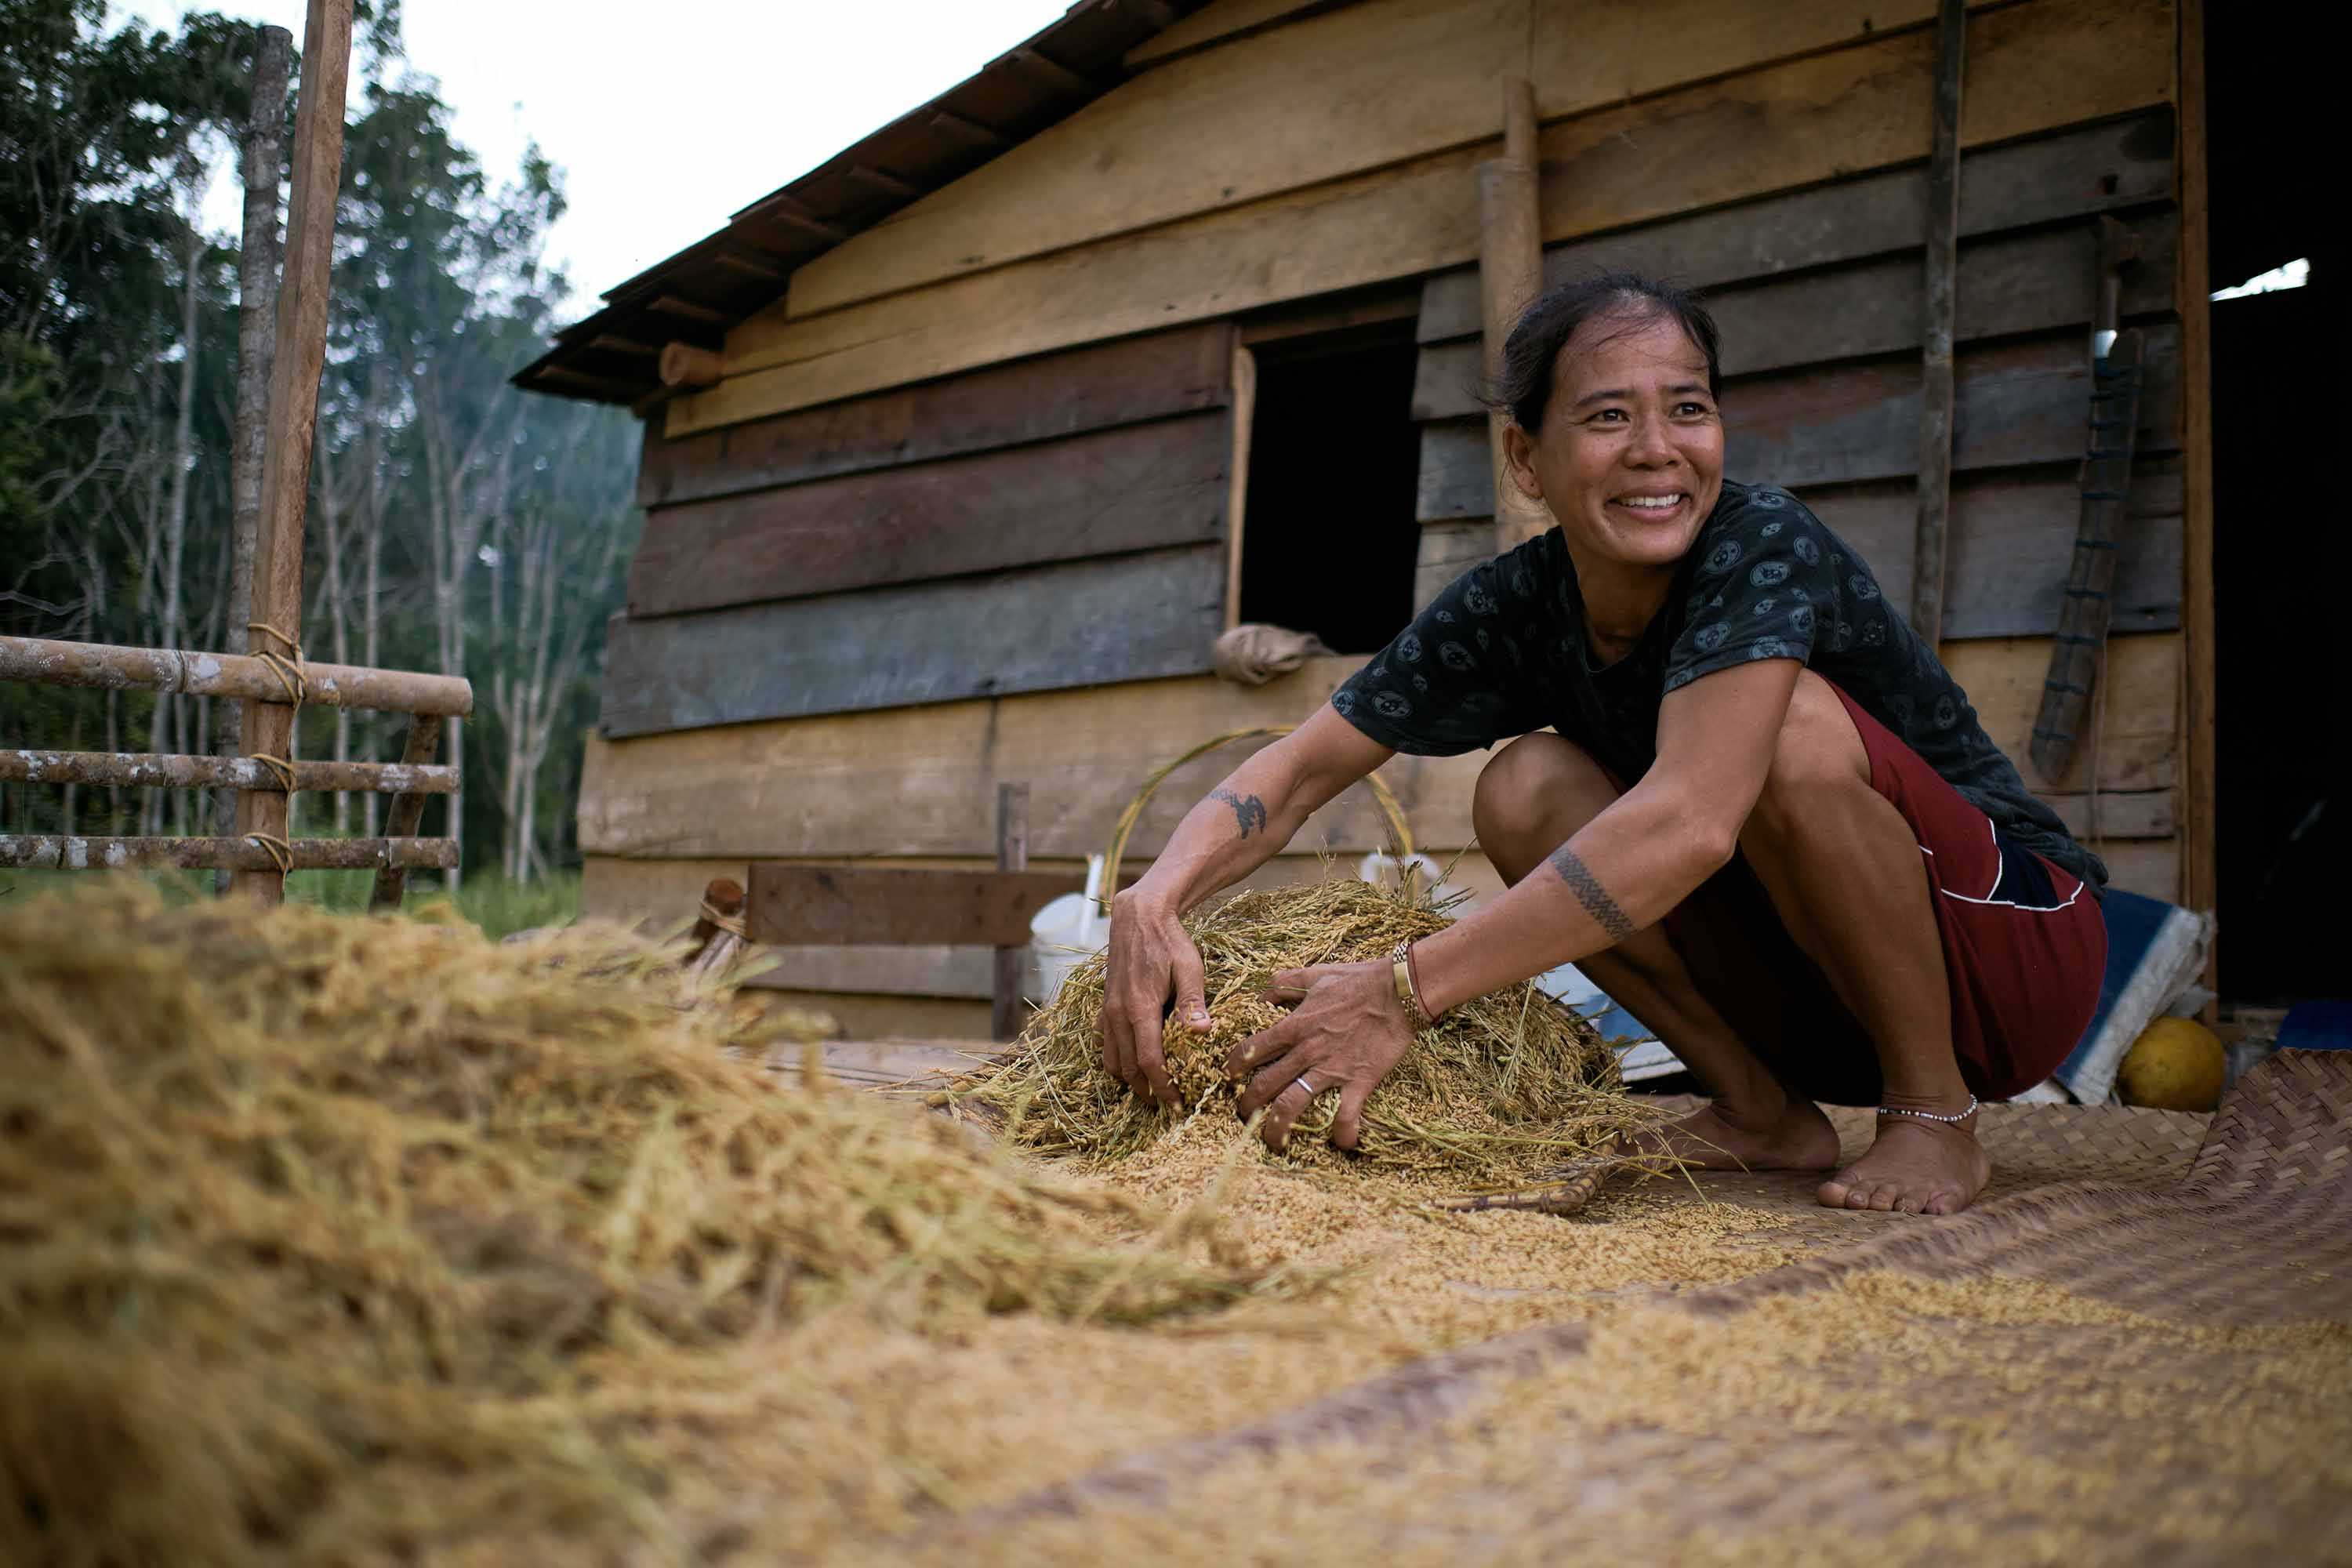 An older woman looks to the left smiling while separating rice grains from the stalks on the deck of a farmhouse.